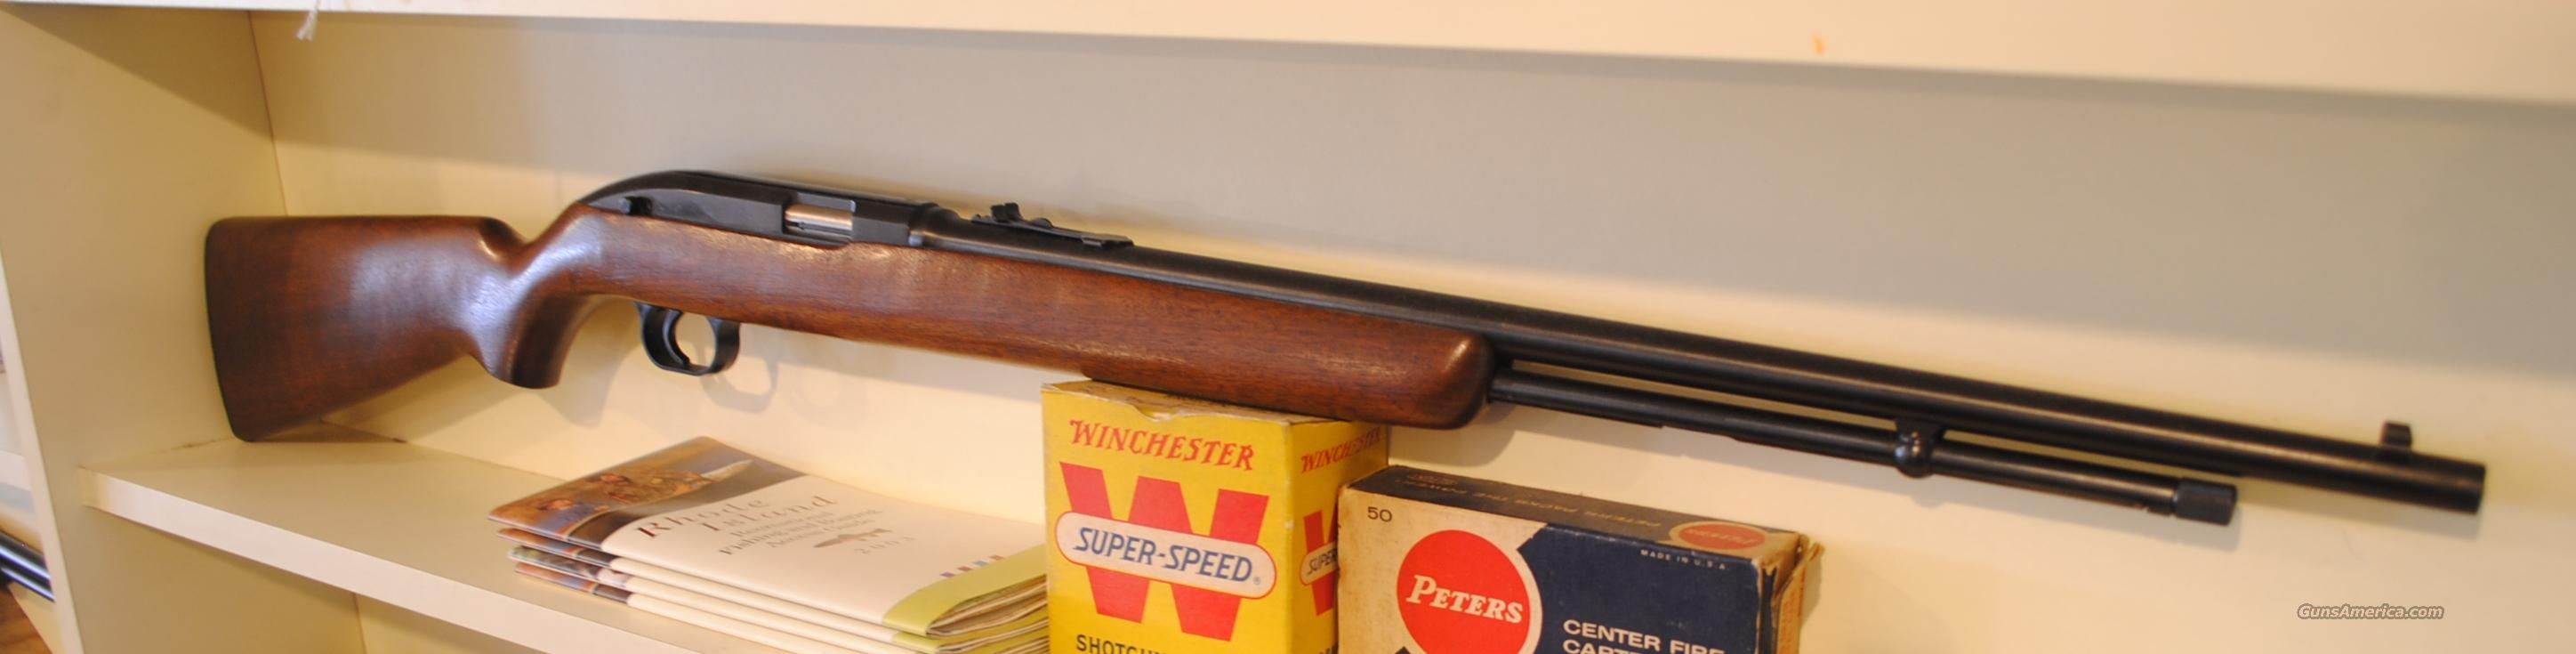 Winchester 77  Guns > Rifles > Winchester Rifles - Modern Bolt/Auto/Single > Autoloaders